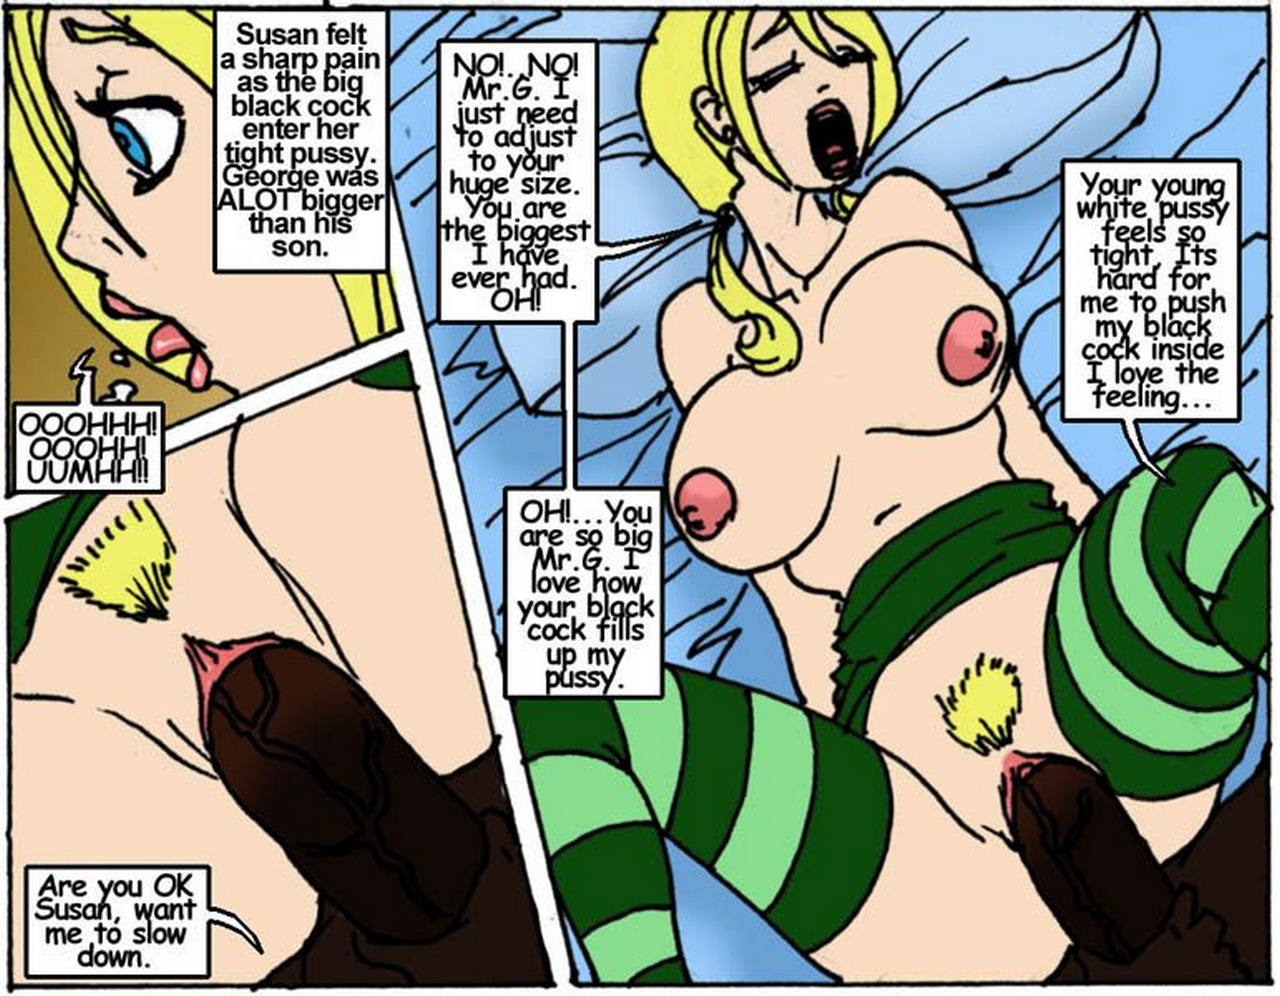 Son-s-Hot-Litlle-Blonde 21 free sex comic